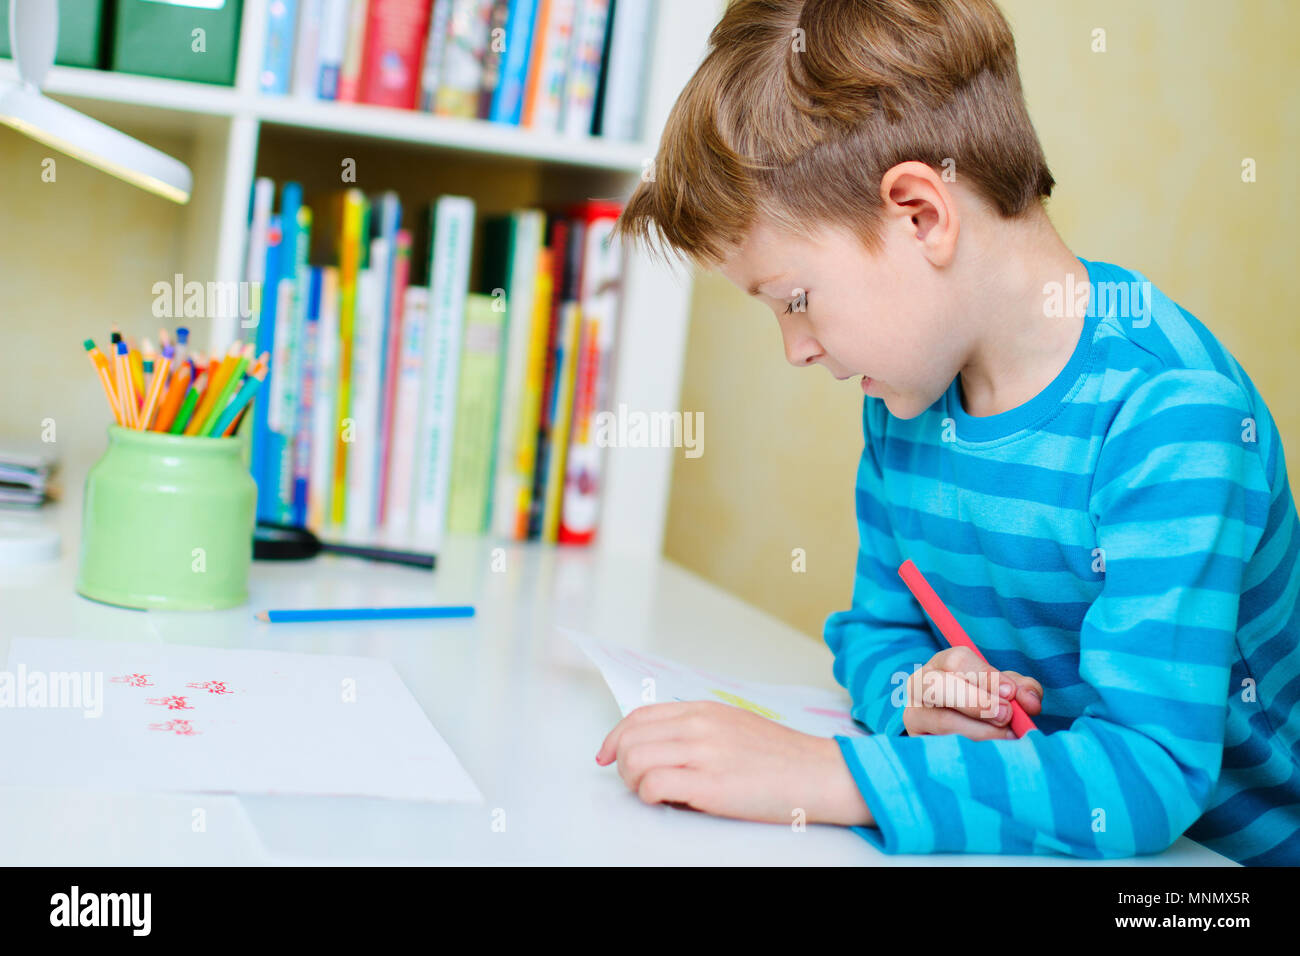 Cute happy schoolkid at home drawing or studying - Stock Image